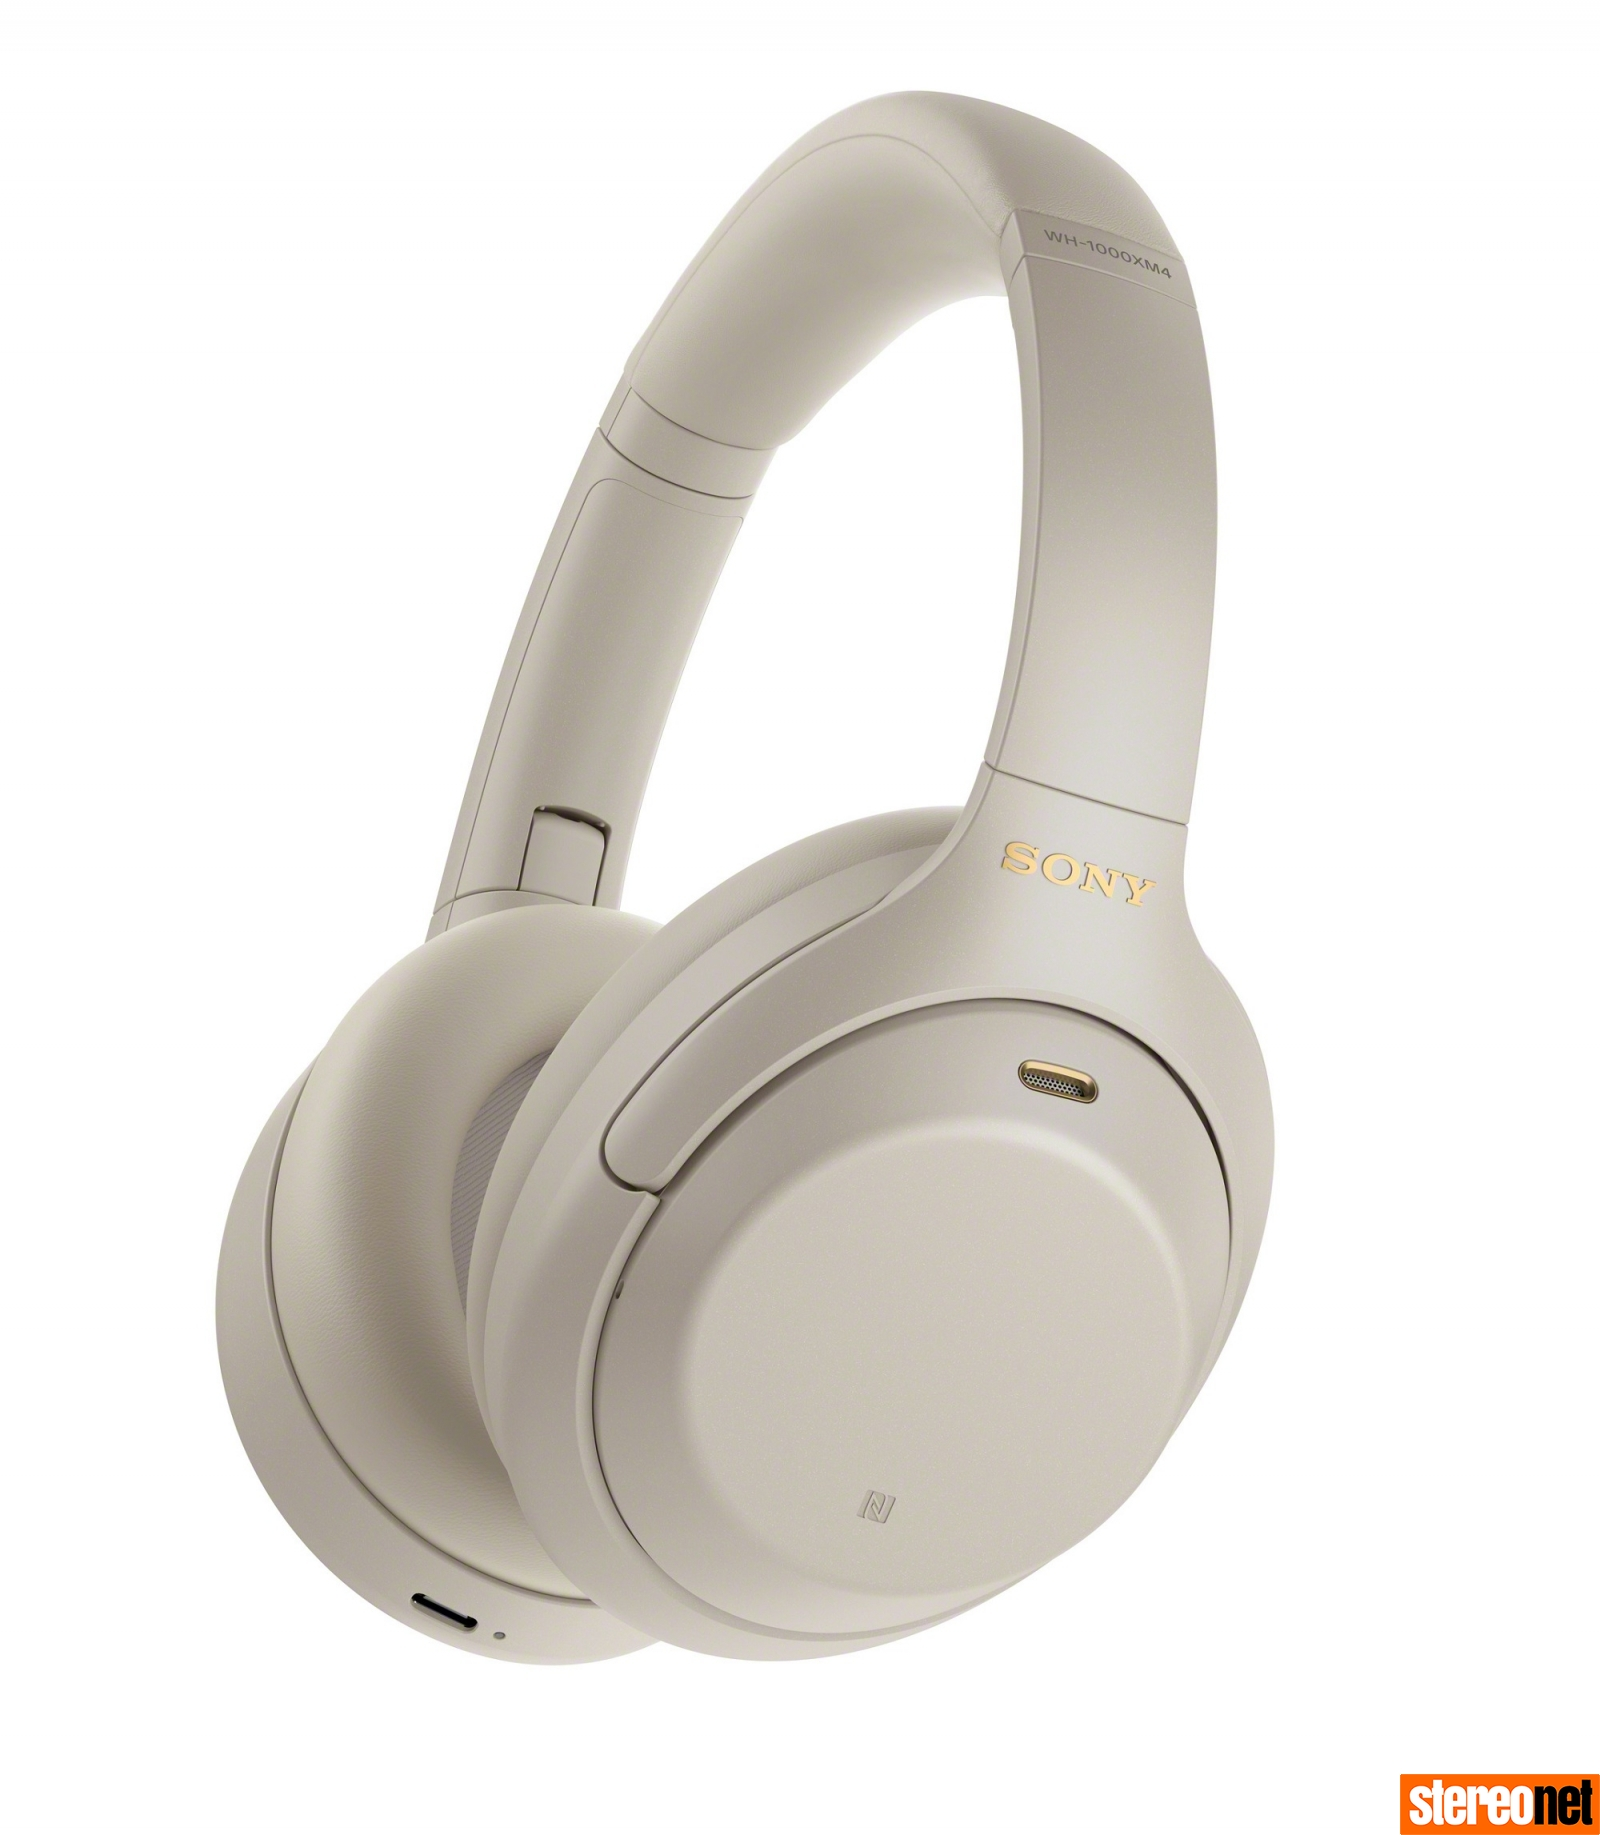 Sony WH-1000XM4 noise-cancelling headphones